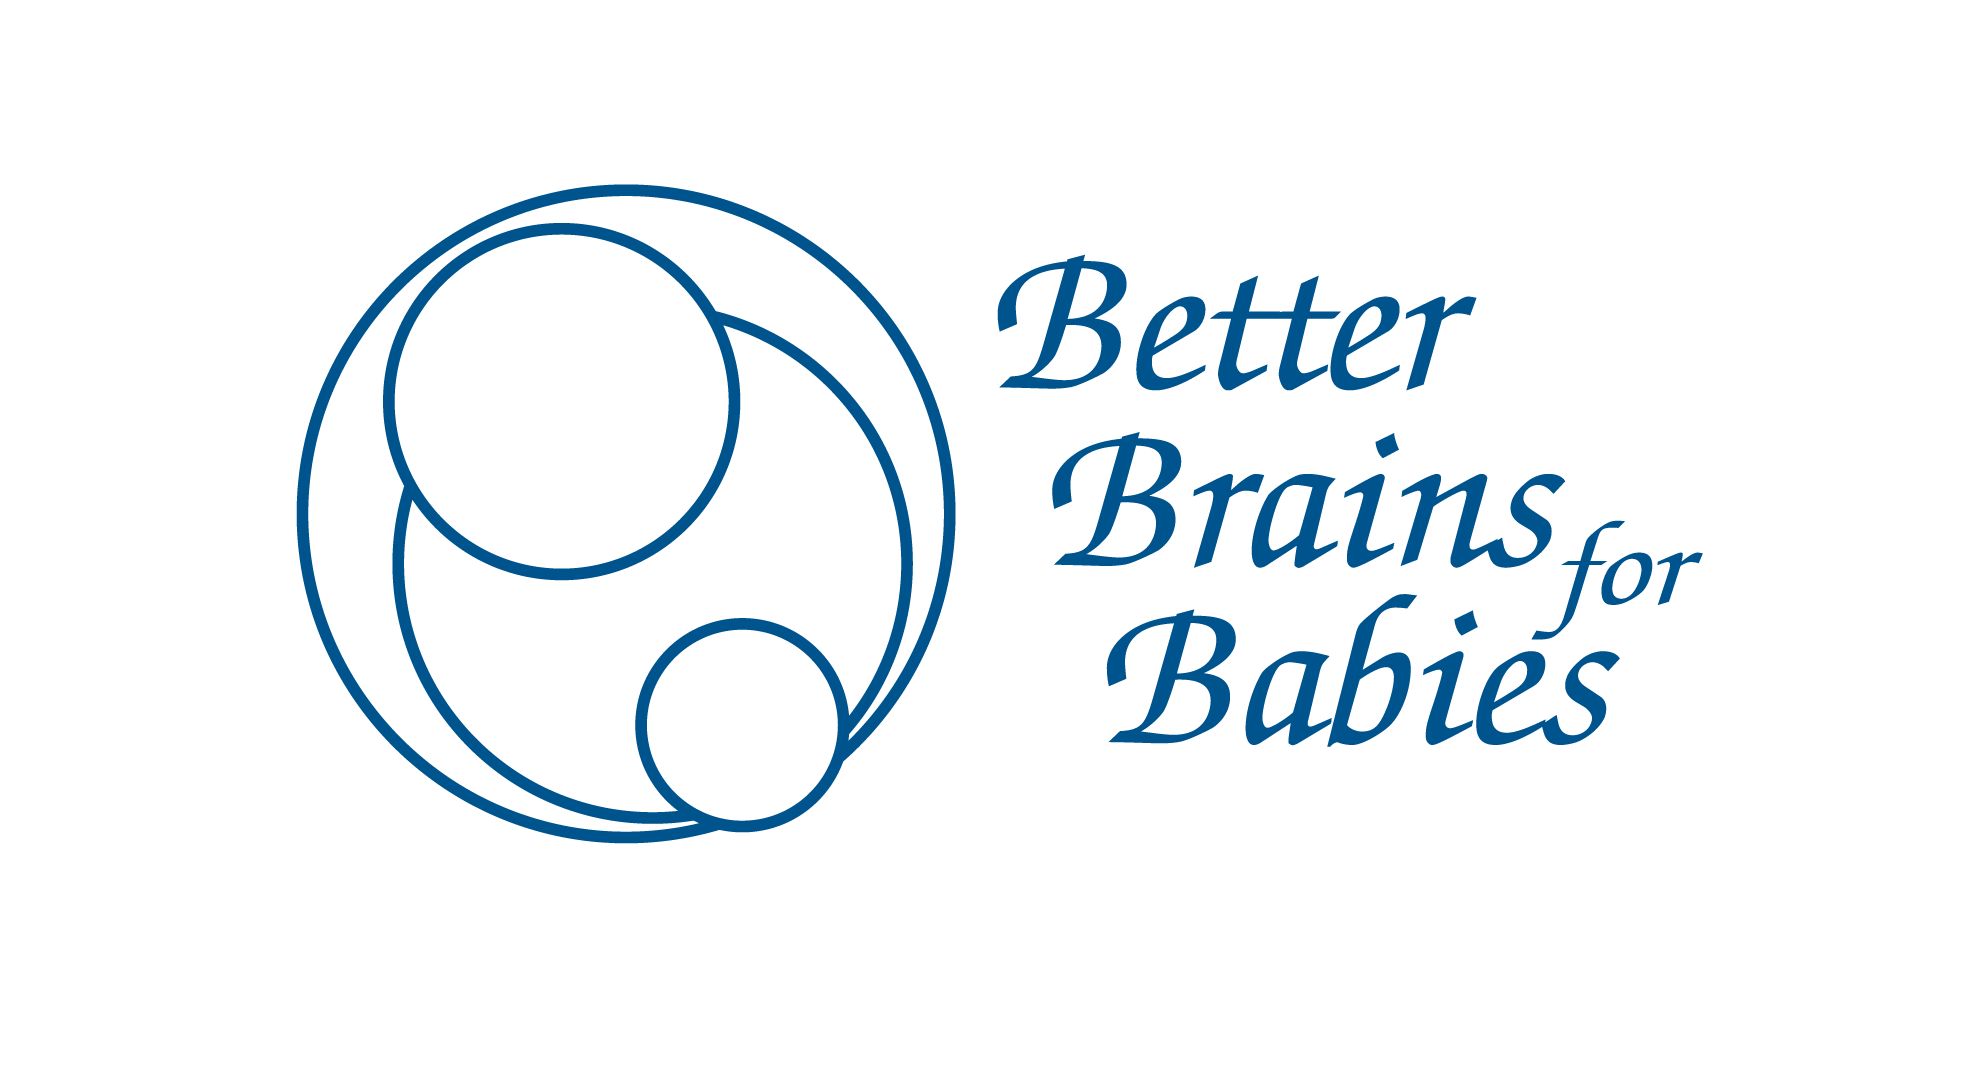 Better Brains for Babies logo